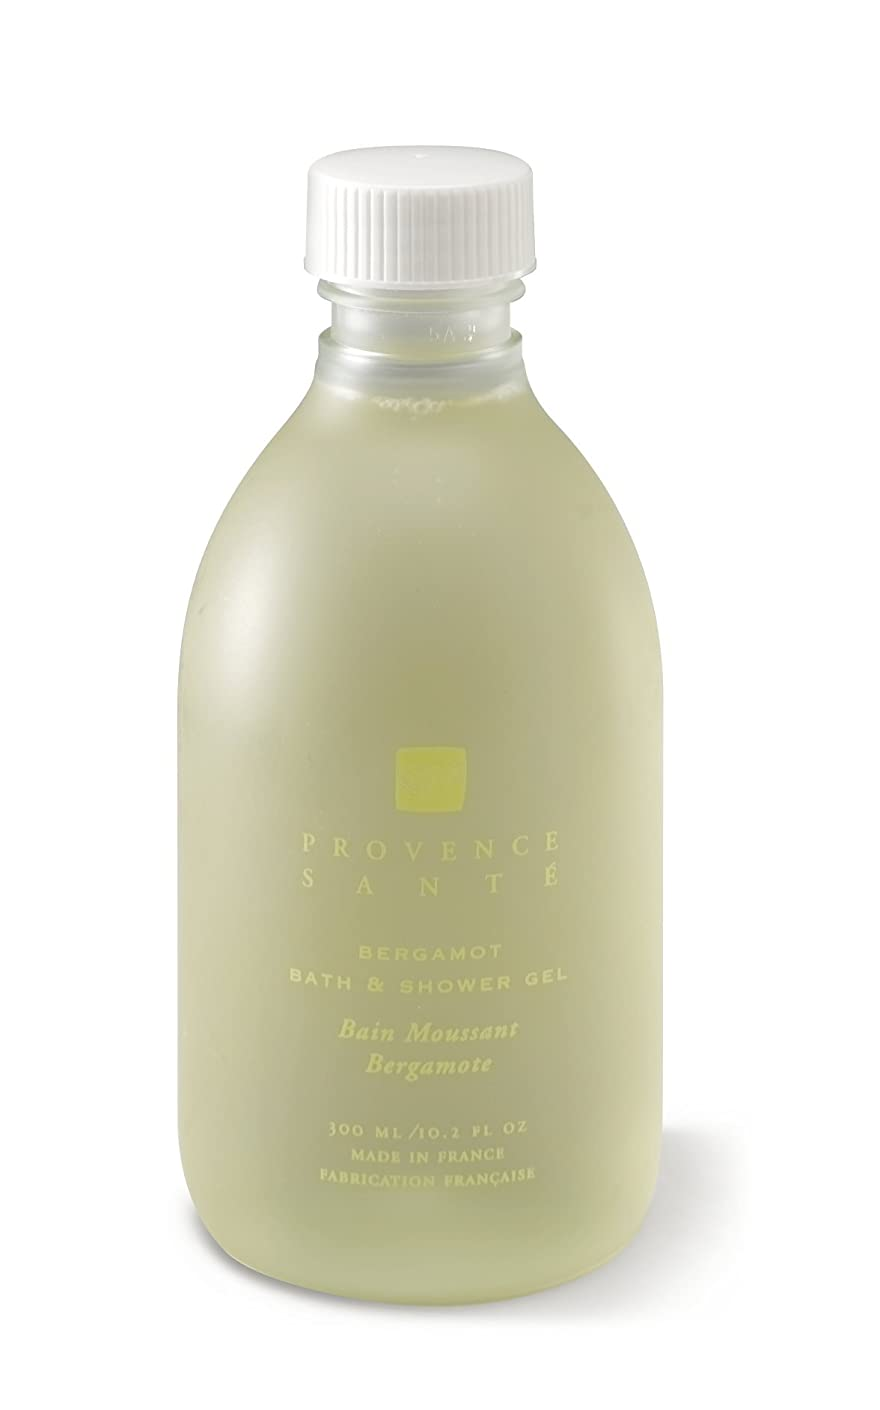 くびれた投獄Provence Sante PS Shower Gel Bergamot, 10.2 Ounces bottle by Provence Sante [並行輸入品]